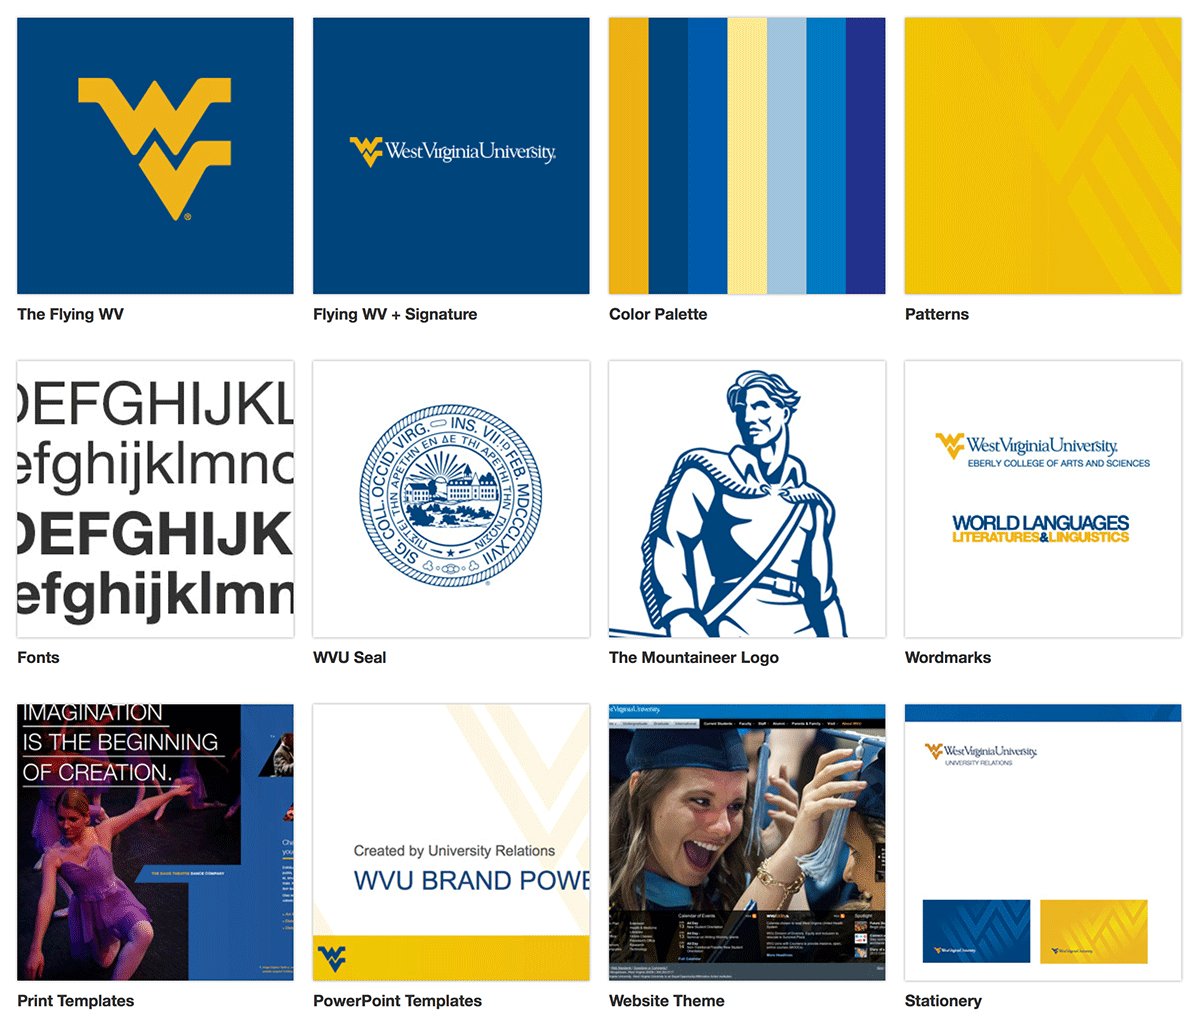 West Virginia University's brand style guide.